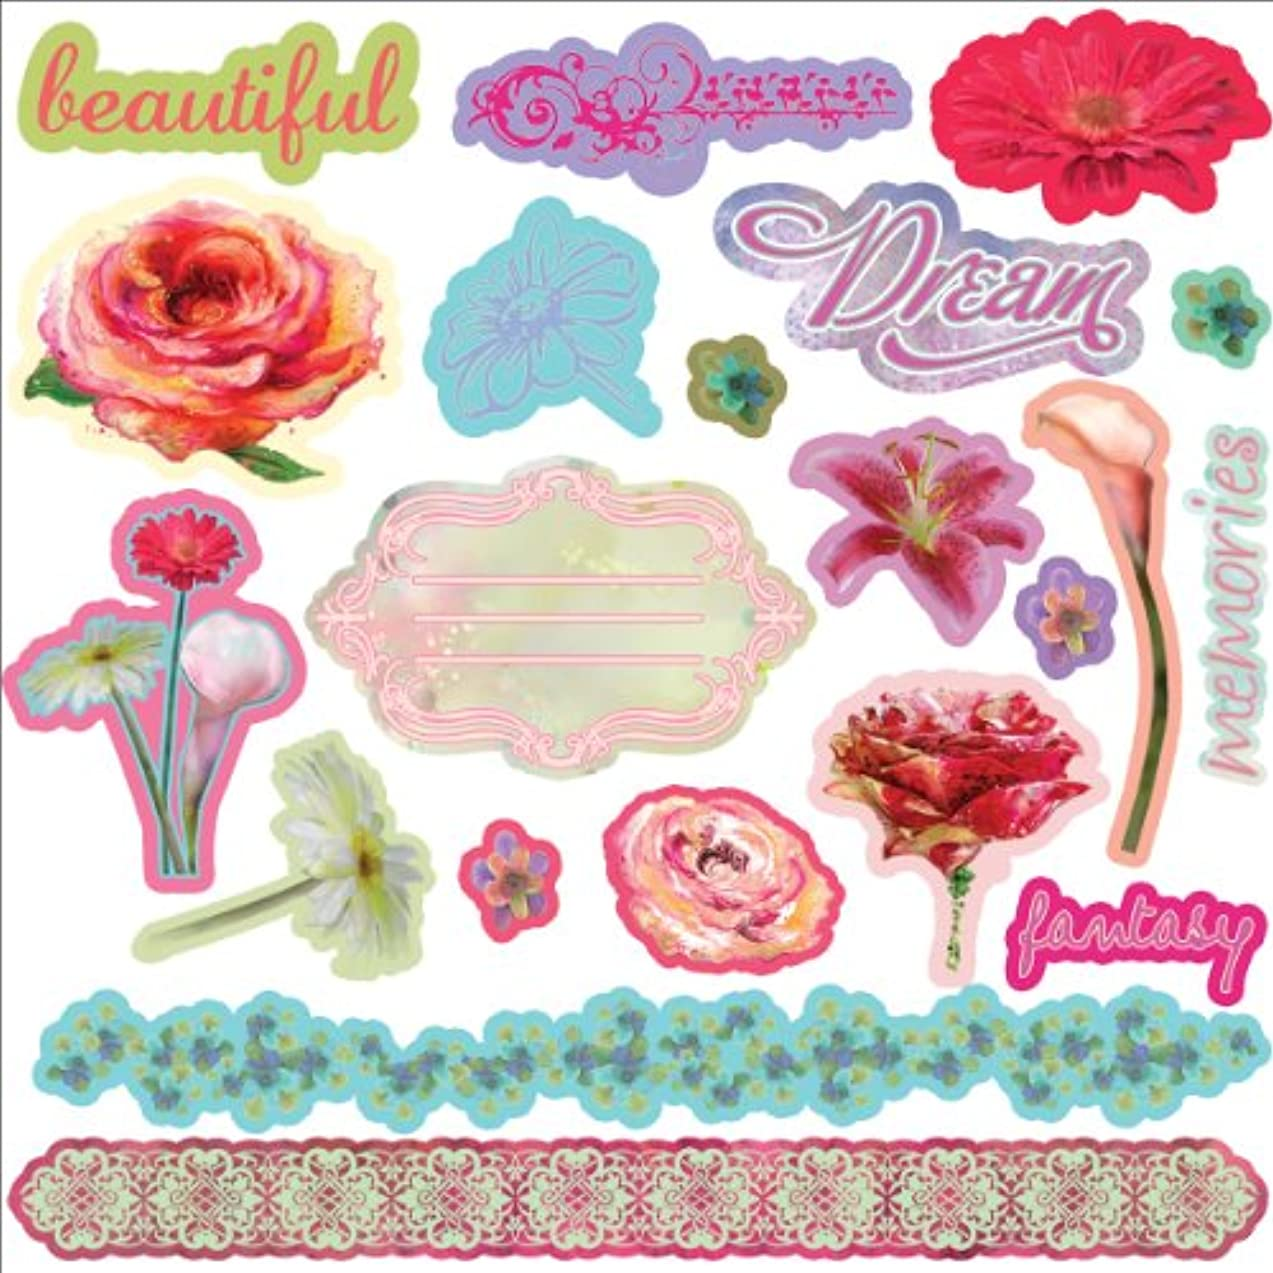 Firefly Self-Adhesive Chipboard Pieces 24/Pkg-Assorted Sizes From 1